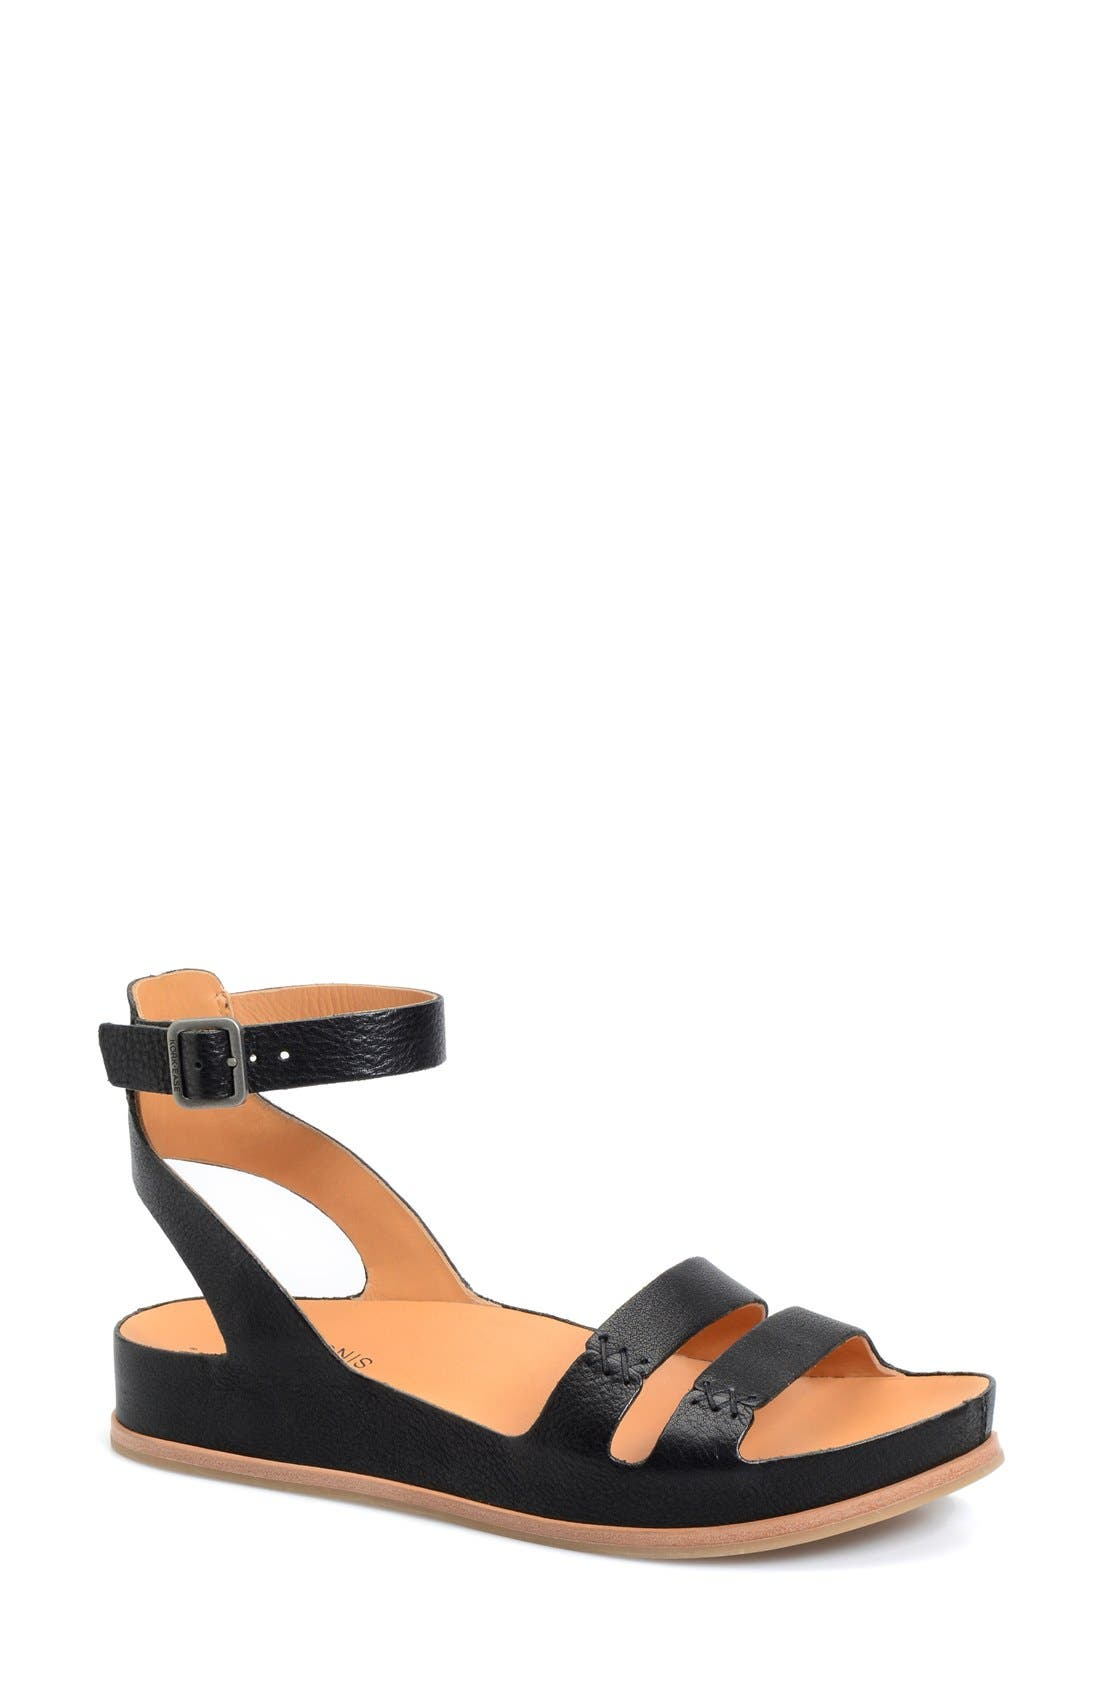 'Audrina' Ankle Strap Sandal,                         Main,                         color, BLACK LEATHER